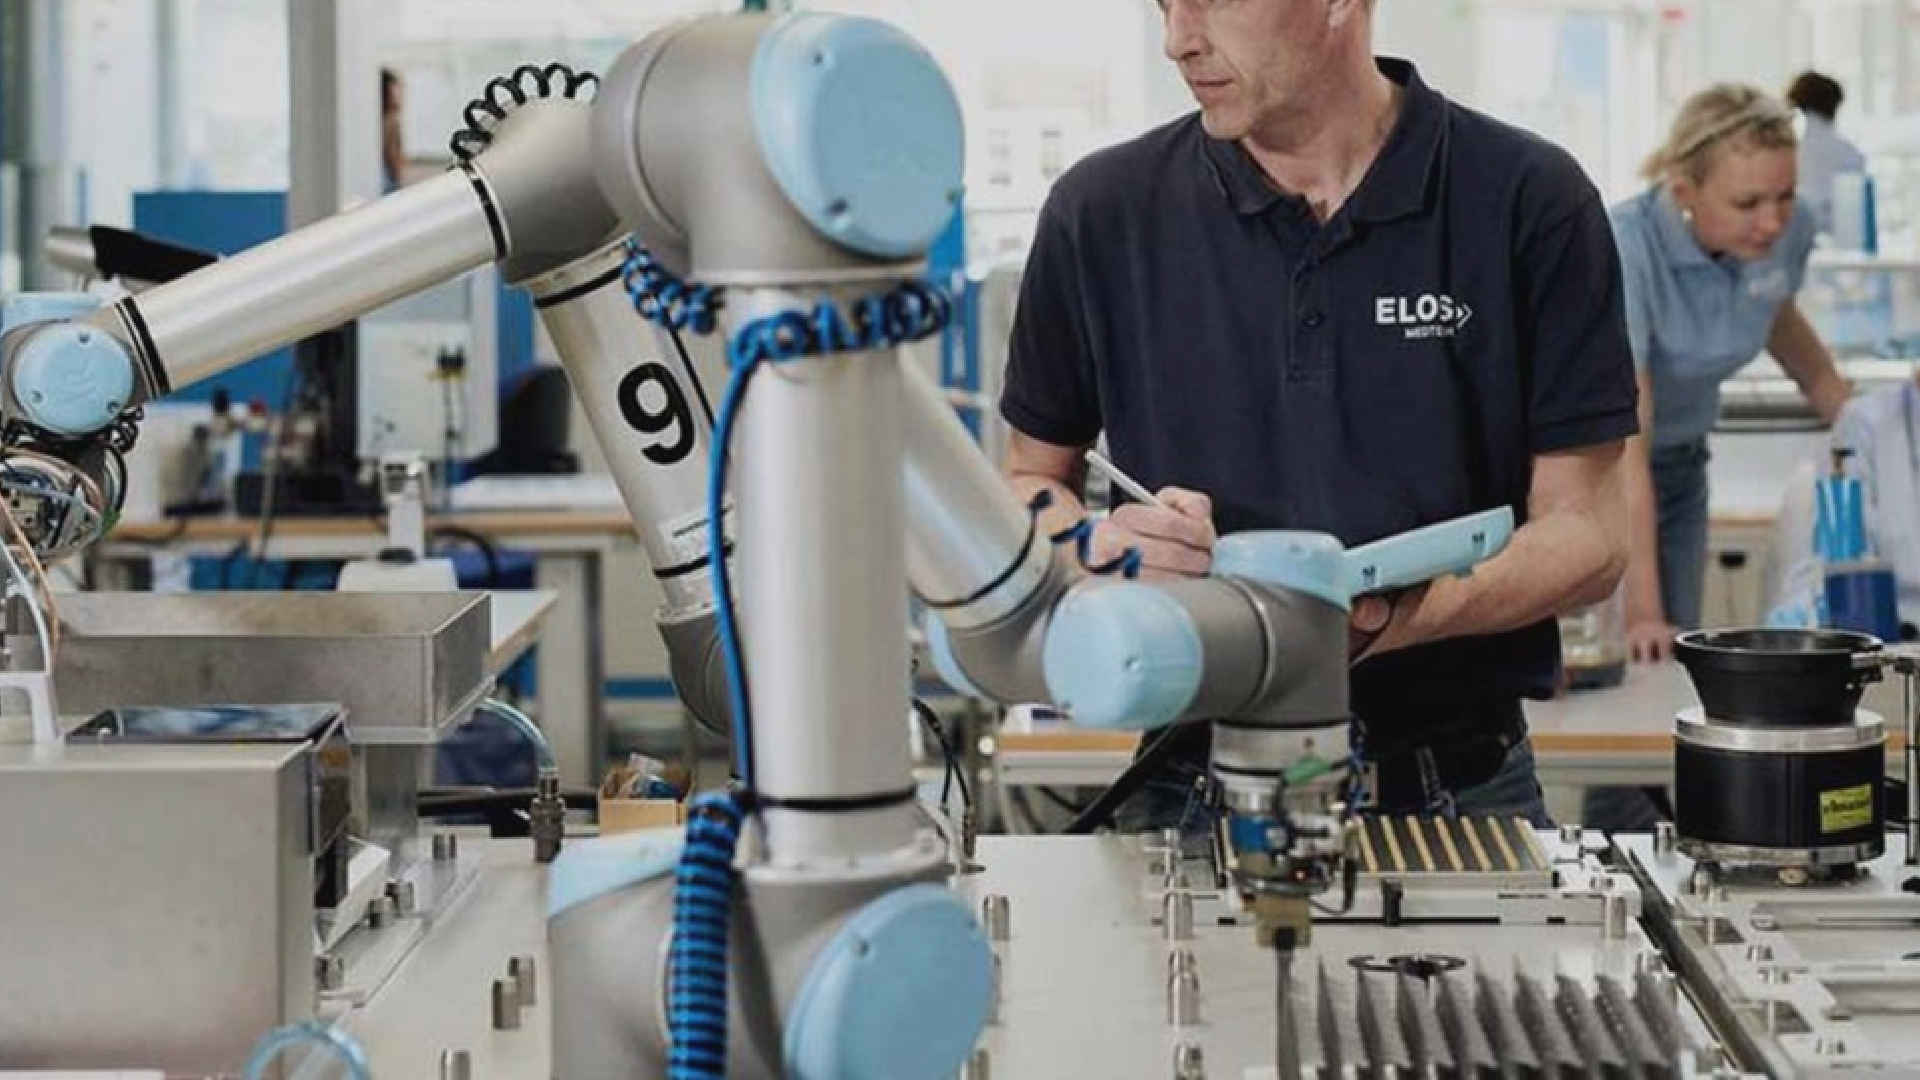 Universal Robots automates material handling tasks with ease.